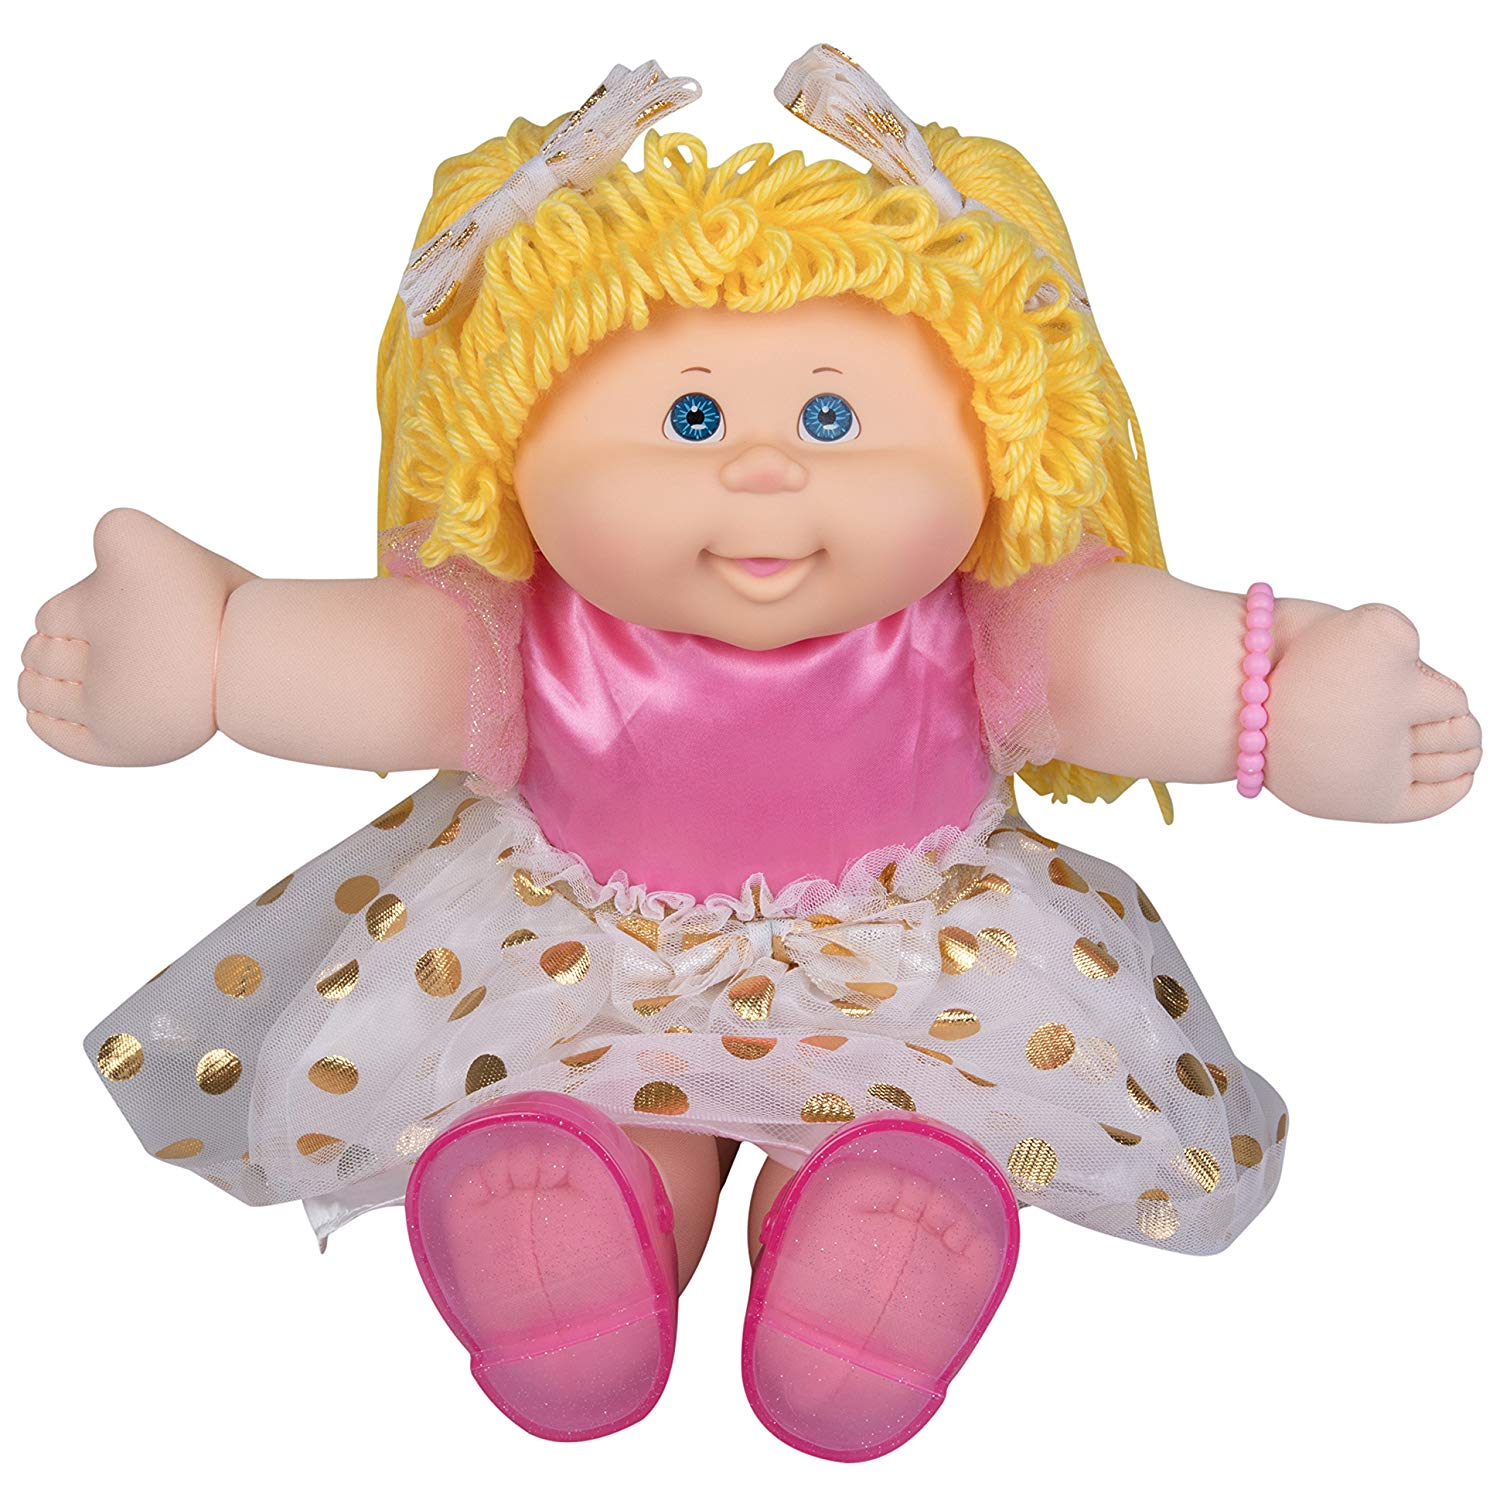 Cabbage Patch Kids Vintage Retro Style Yarn Hair Doll  Original Blonde Hair Blue Eyes 16   Amazon Exclusive  Easy to Open Packaging